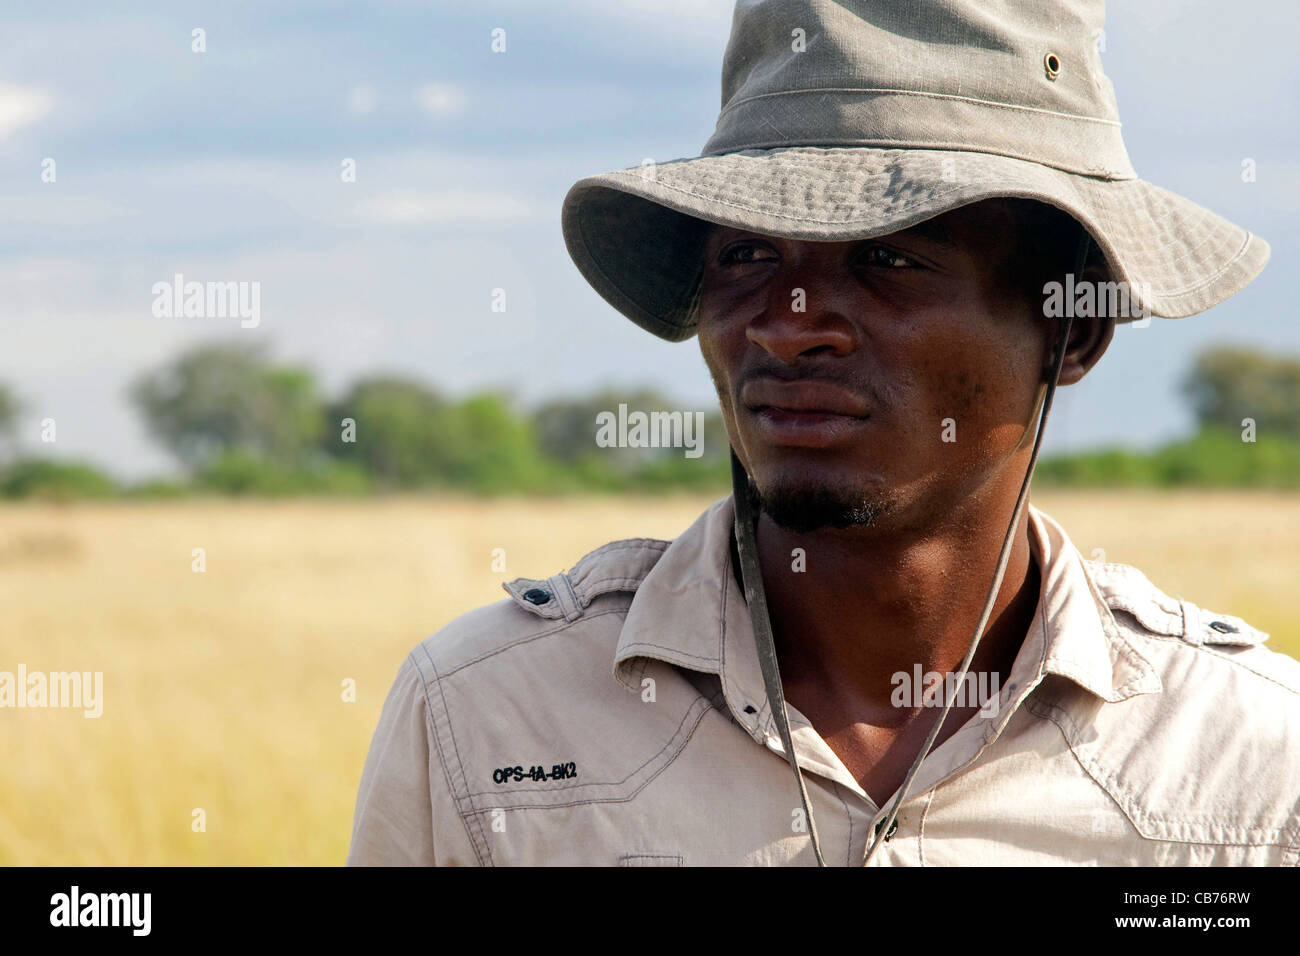 Local African safari guide in the Okavango Delta, Botswana, Africa - Stock Image